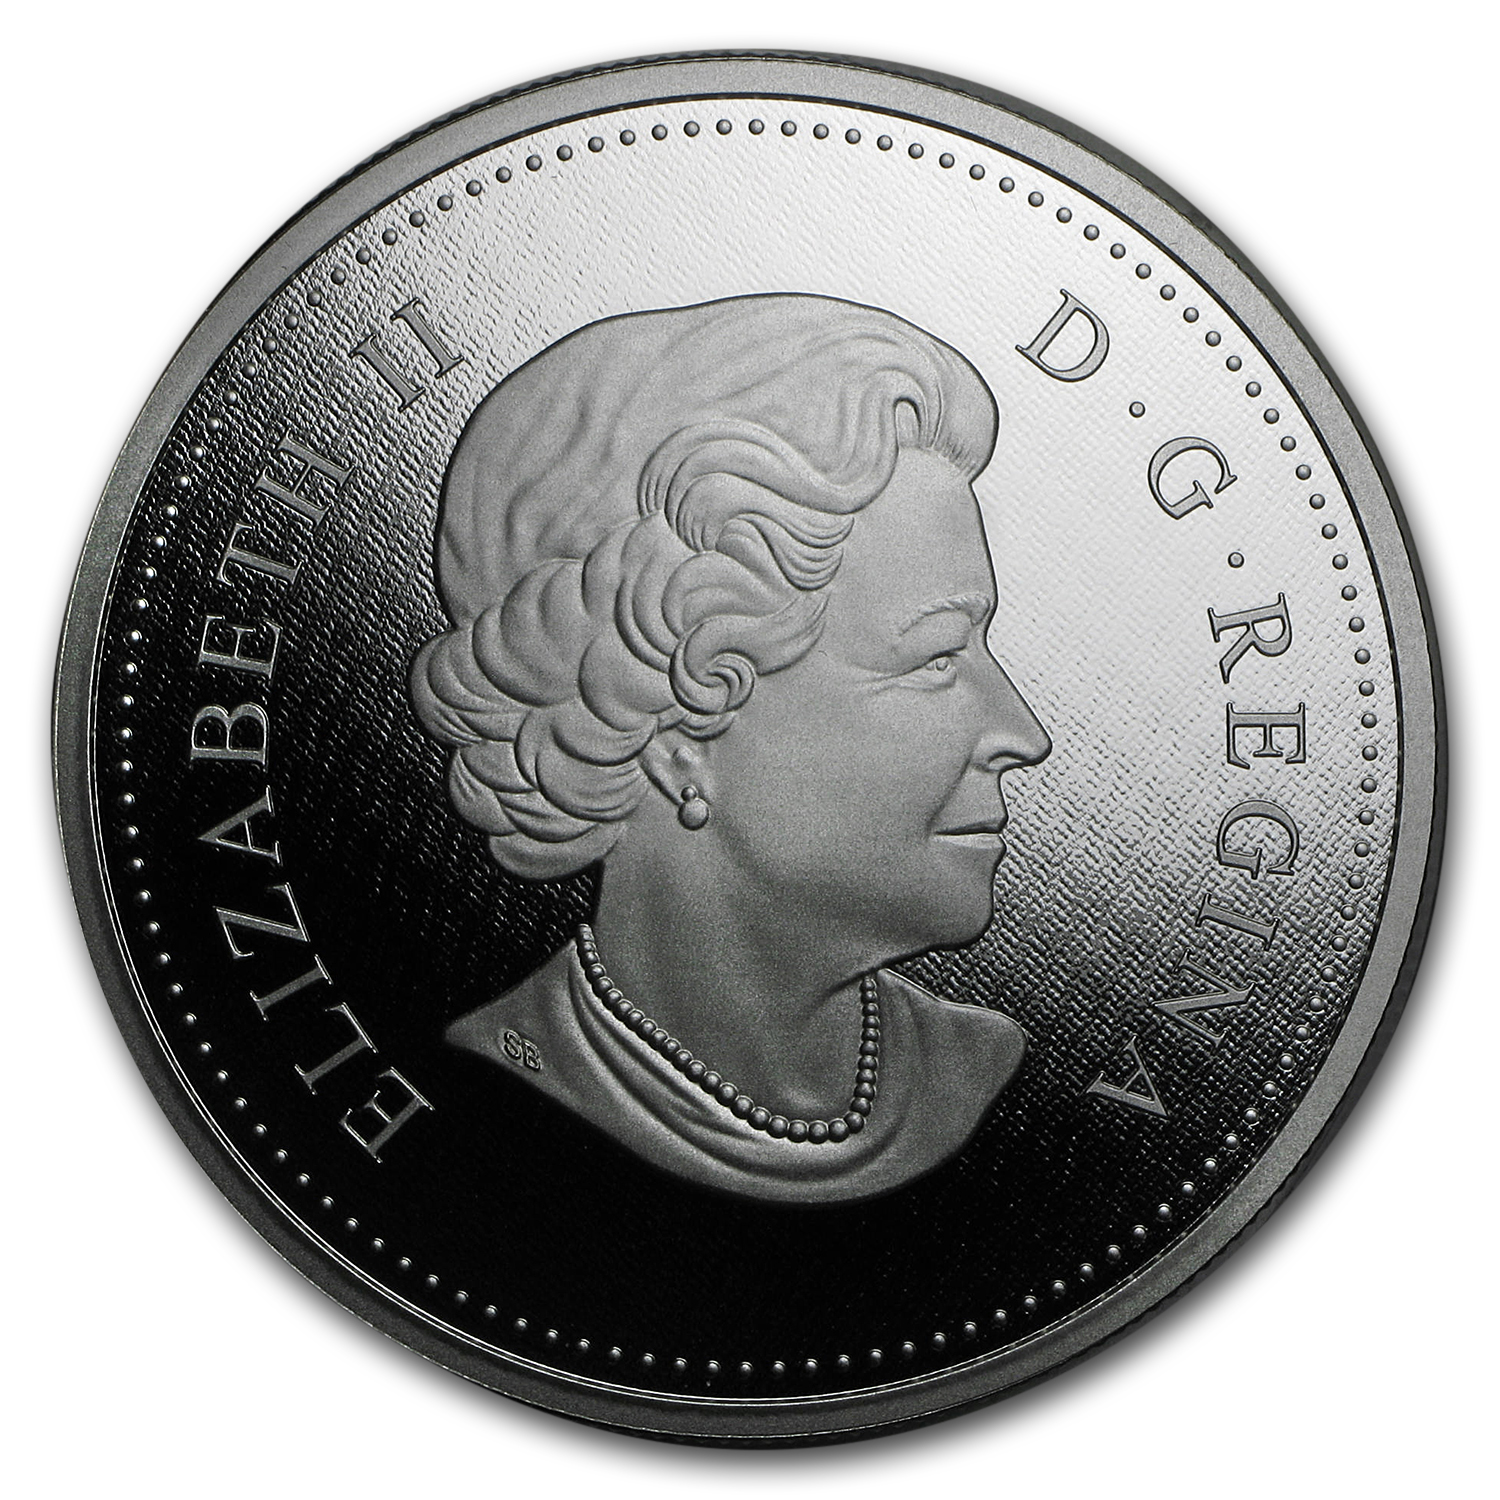 2012 5 oz Silver Canadian Farewell to the Penny